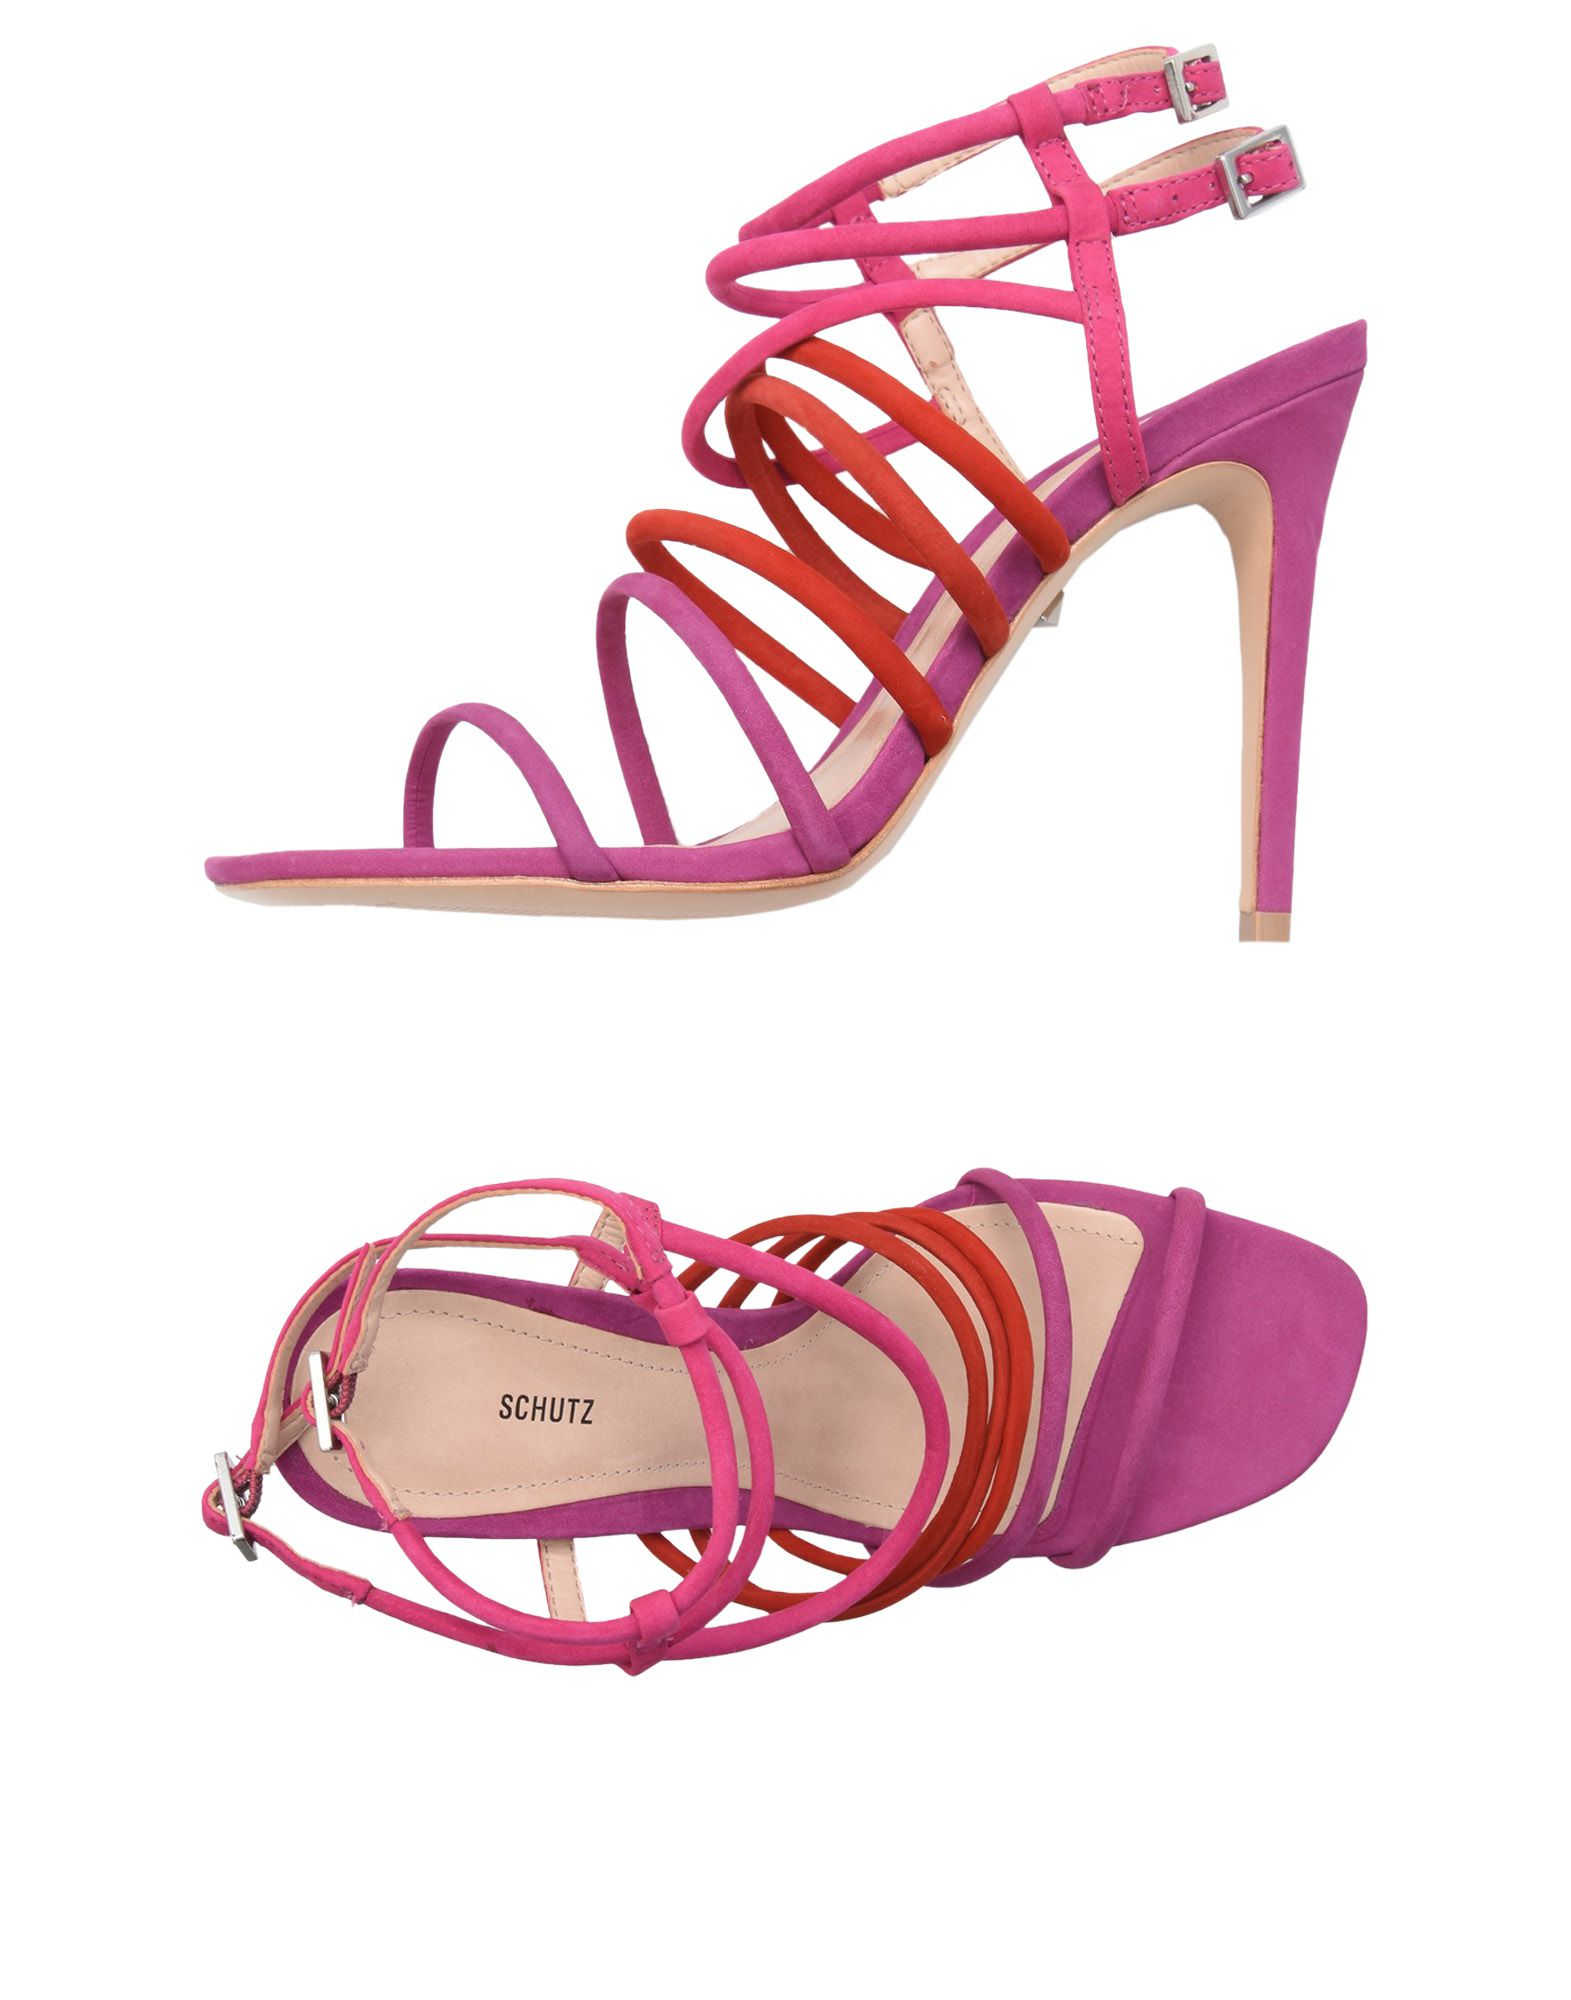 Schutz  Sandals - Women Schutz Sandals online on  Schutz United Kingdom - 11482193LX 31bbd3